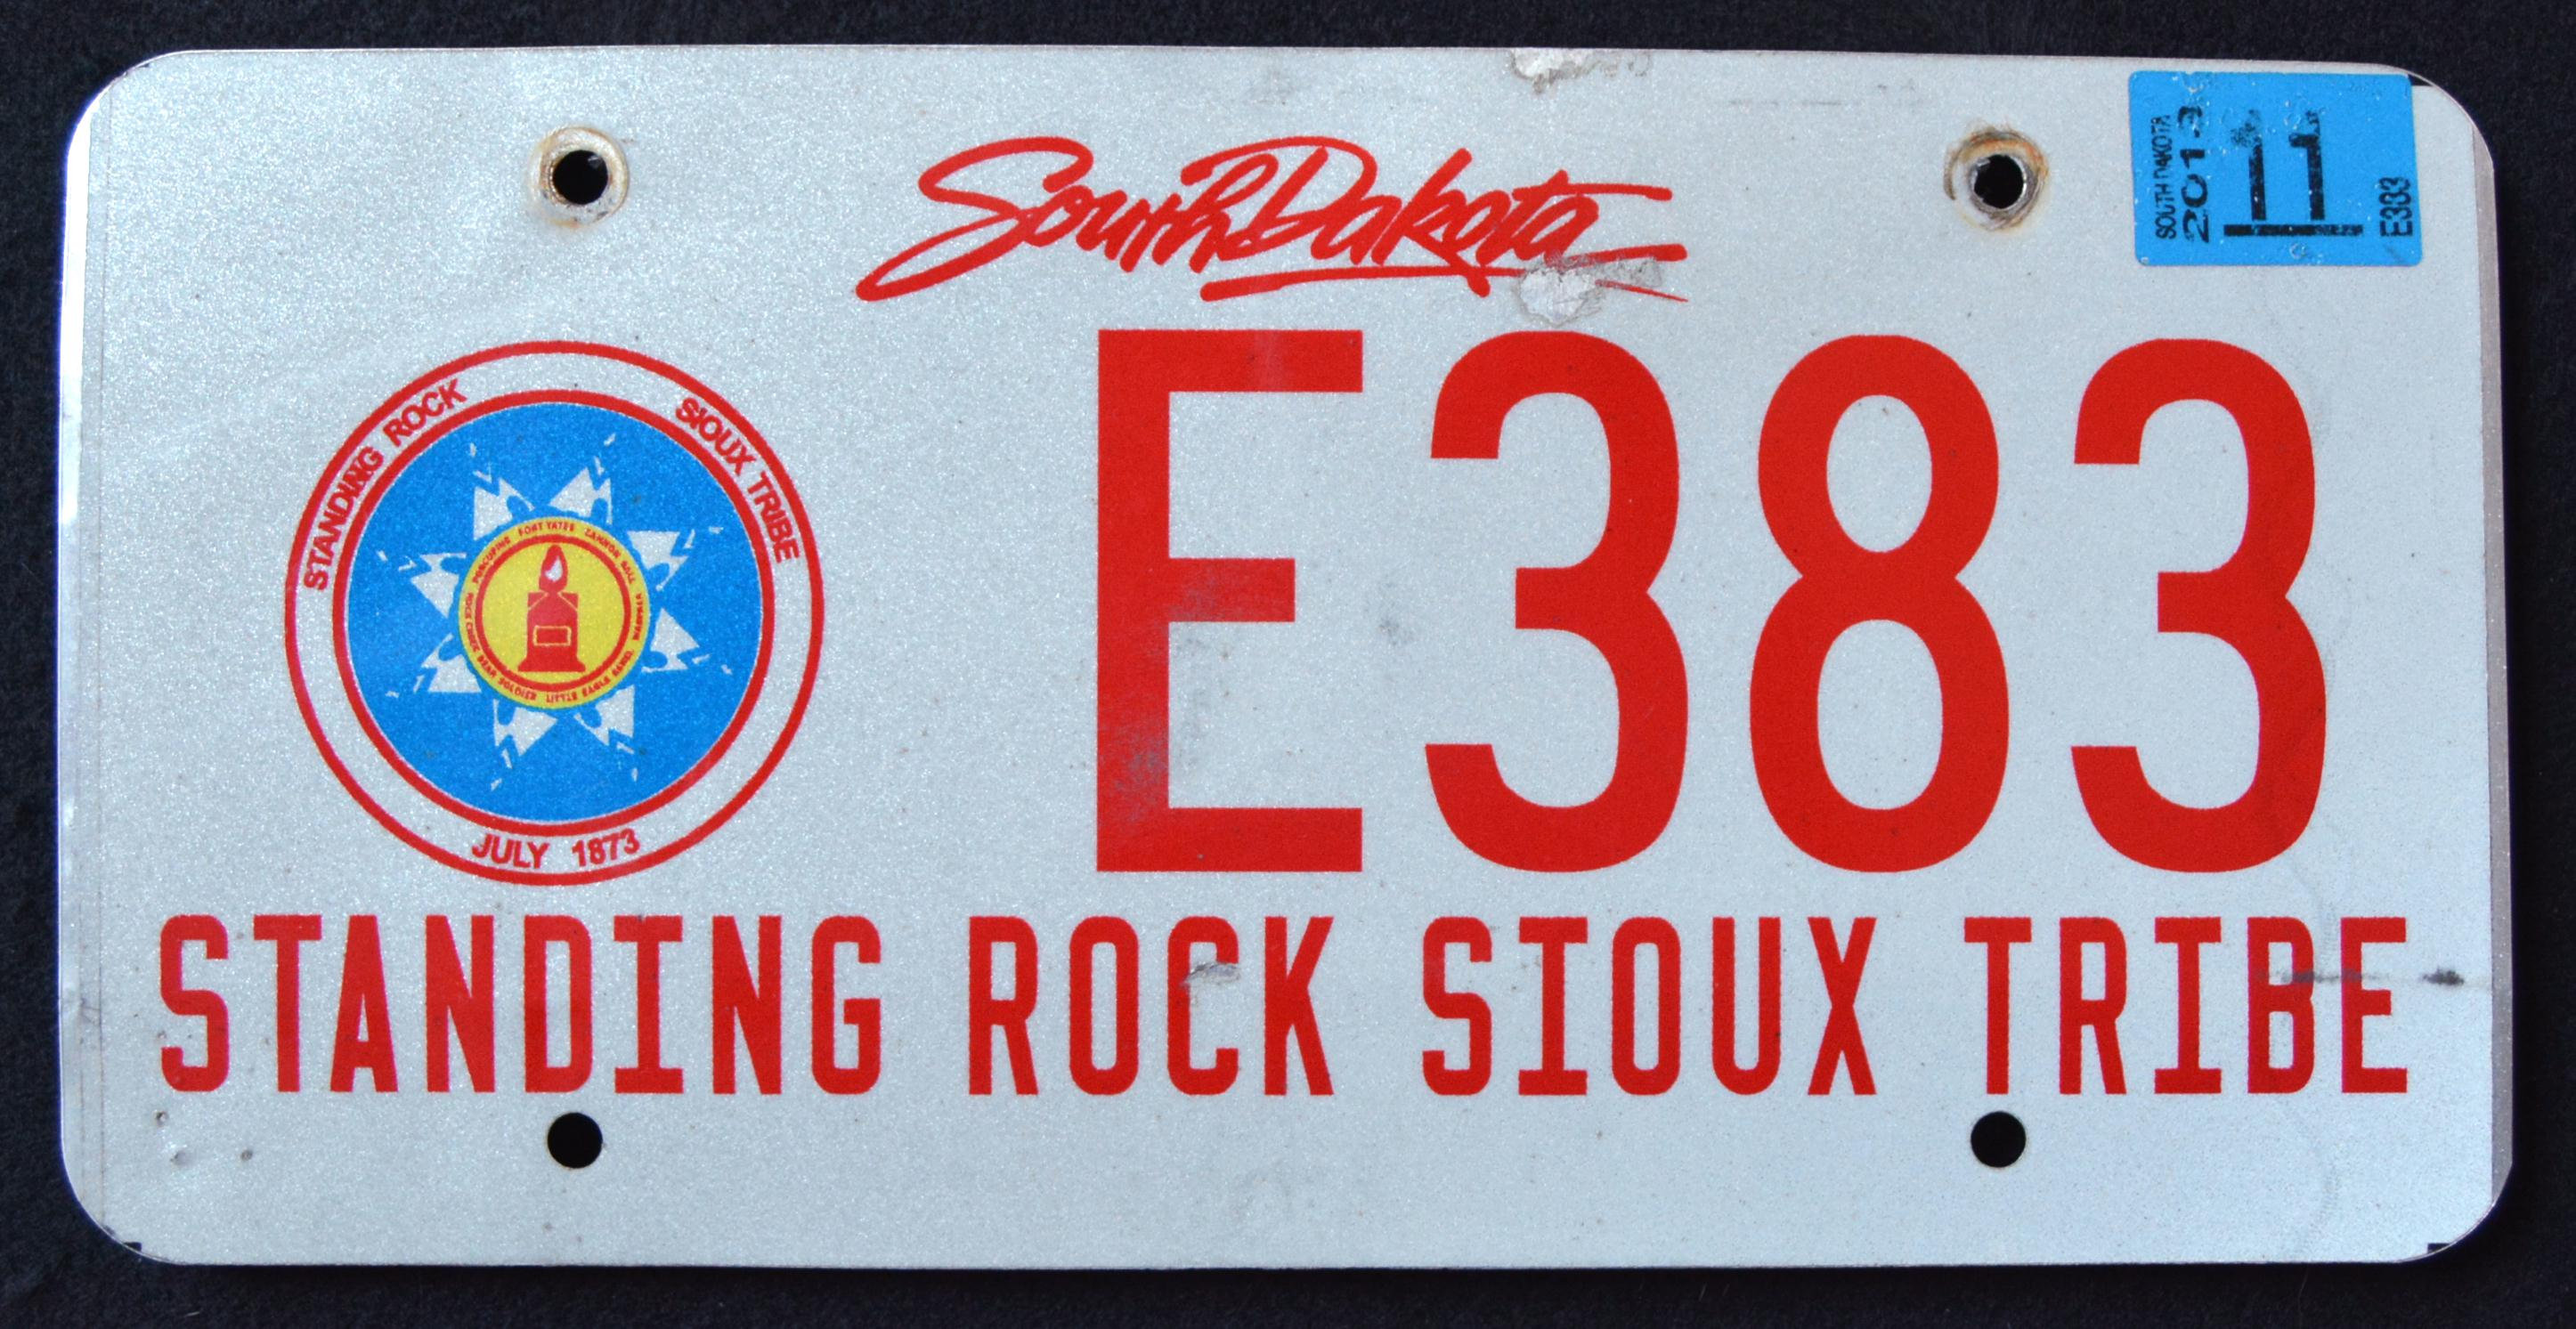 SD Standing Rock Sioux Tribe - Great Seal - E383